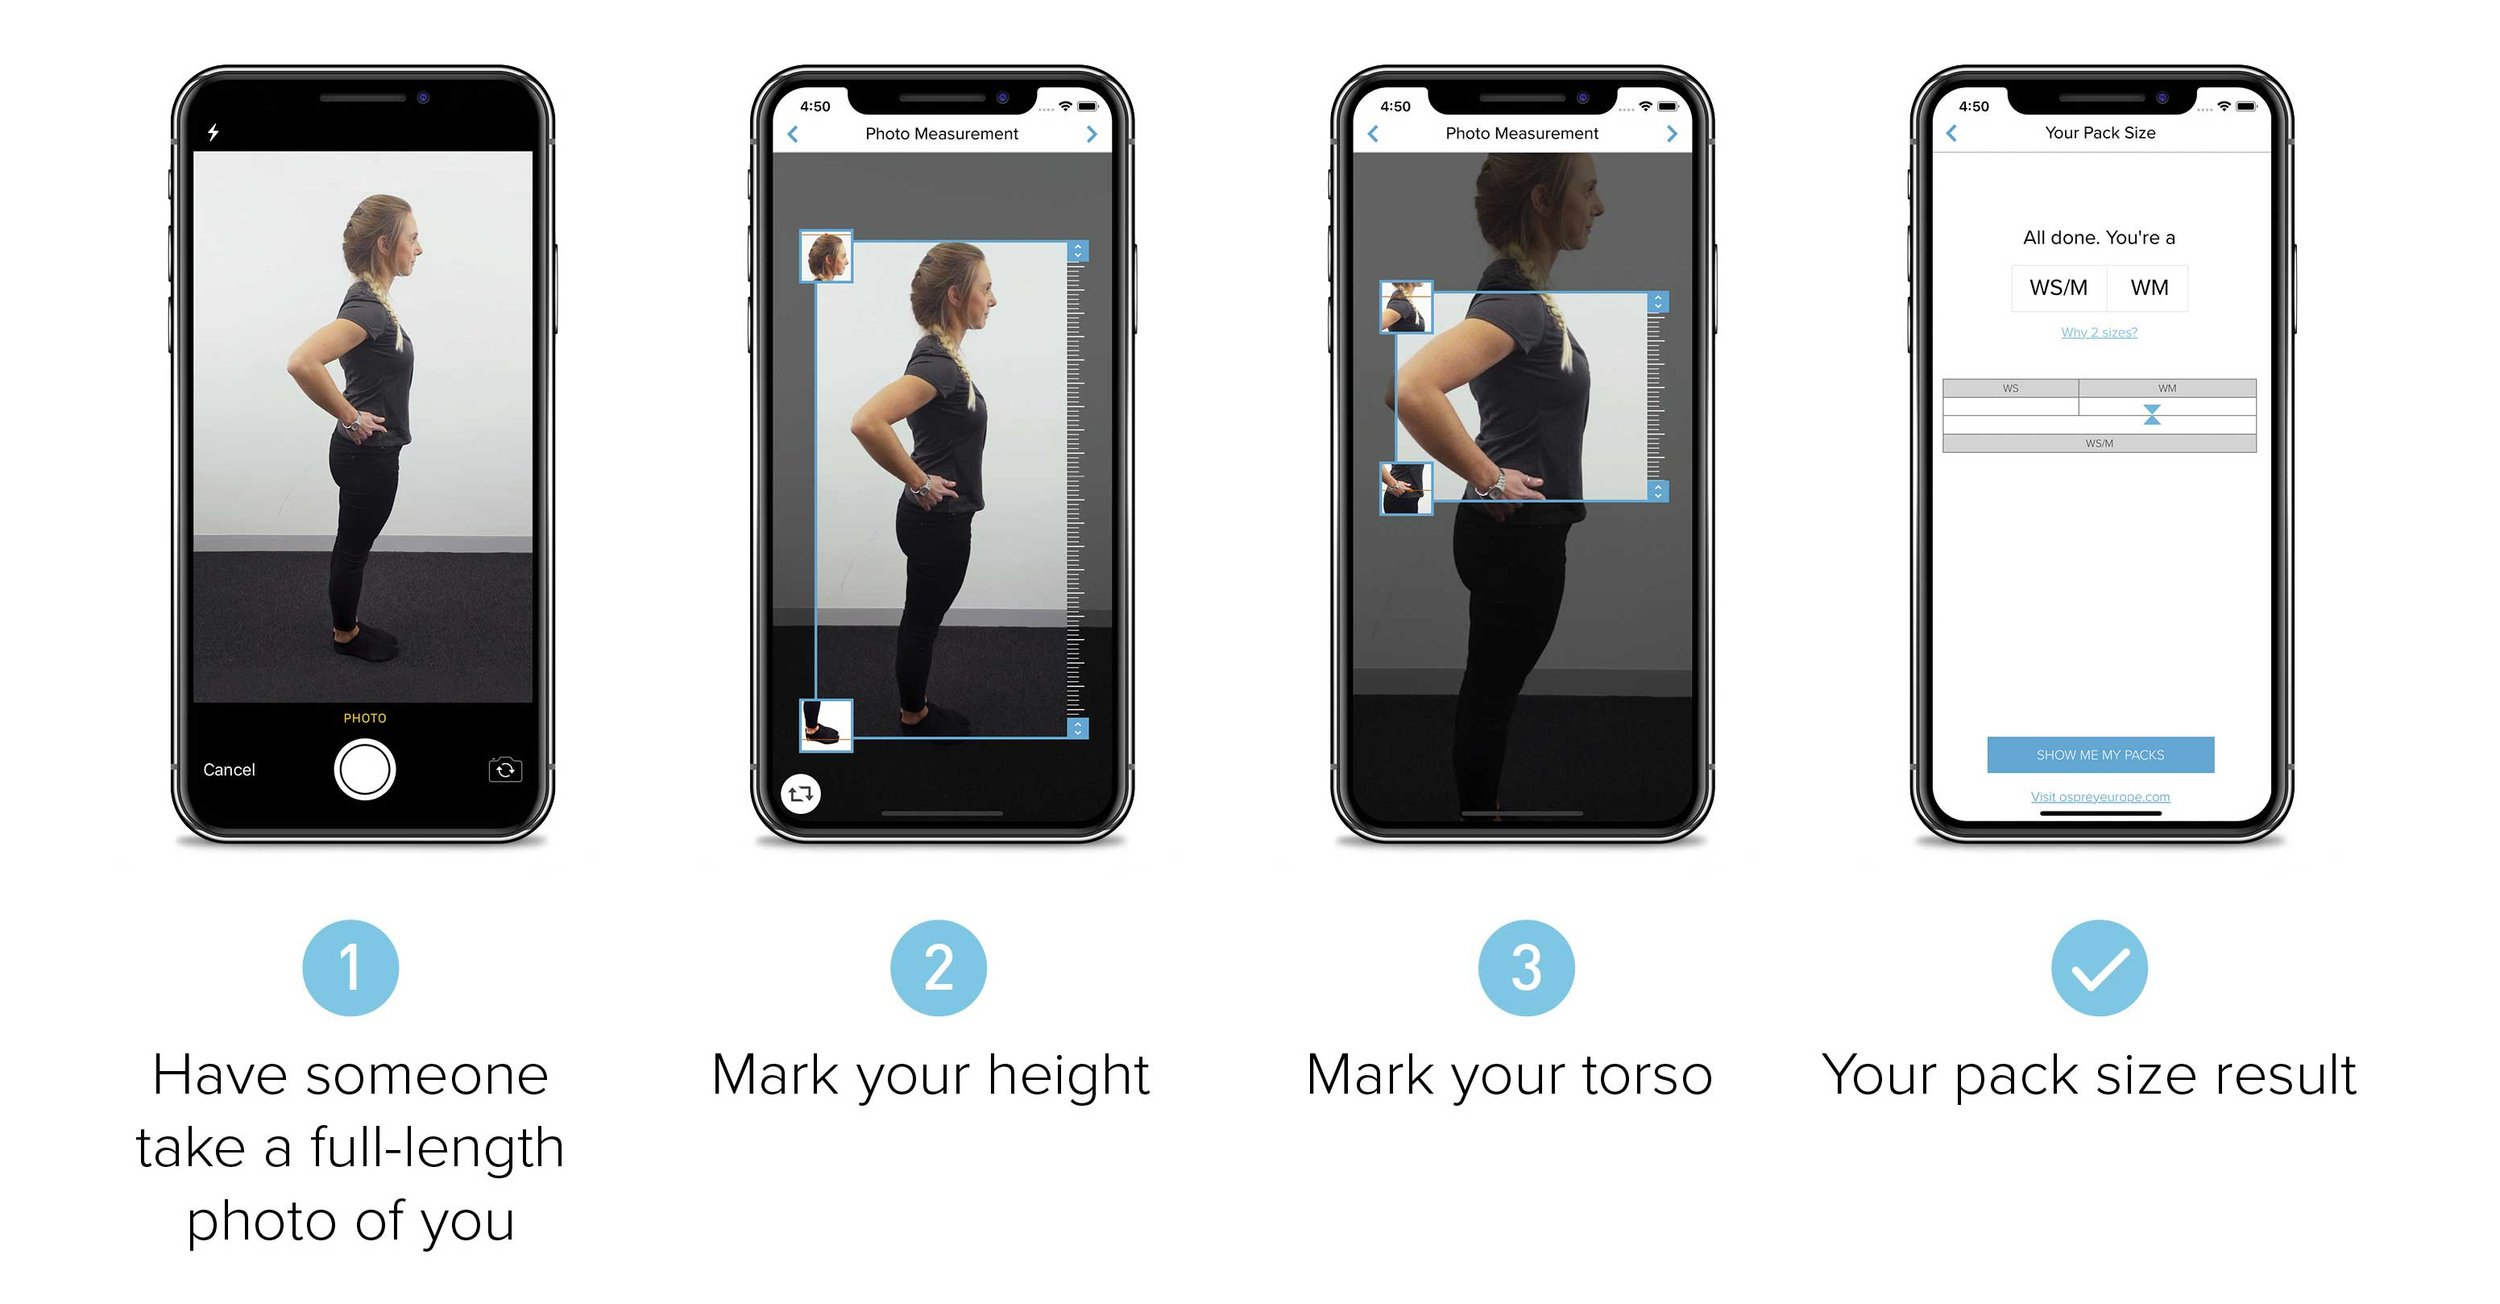 Get the perfect fit with Osprey's Digital Pack Sizing App